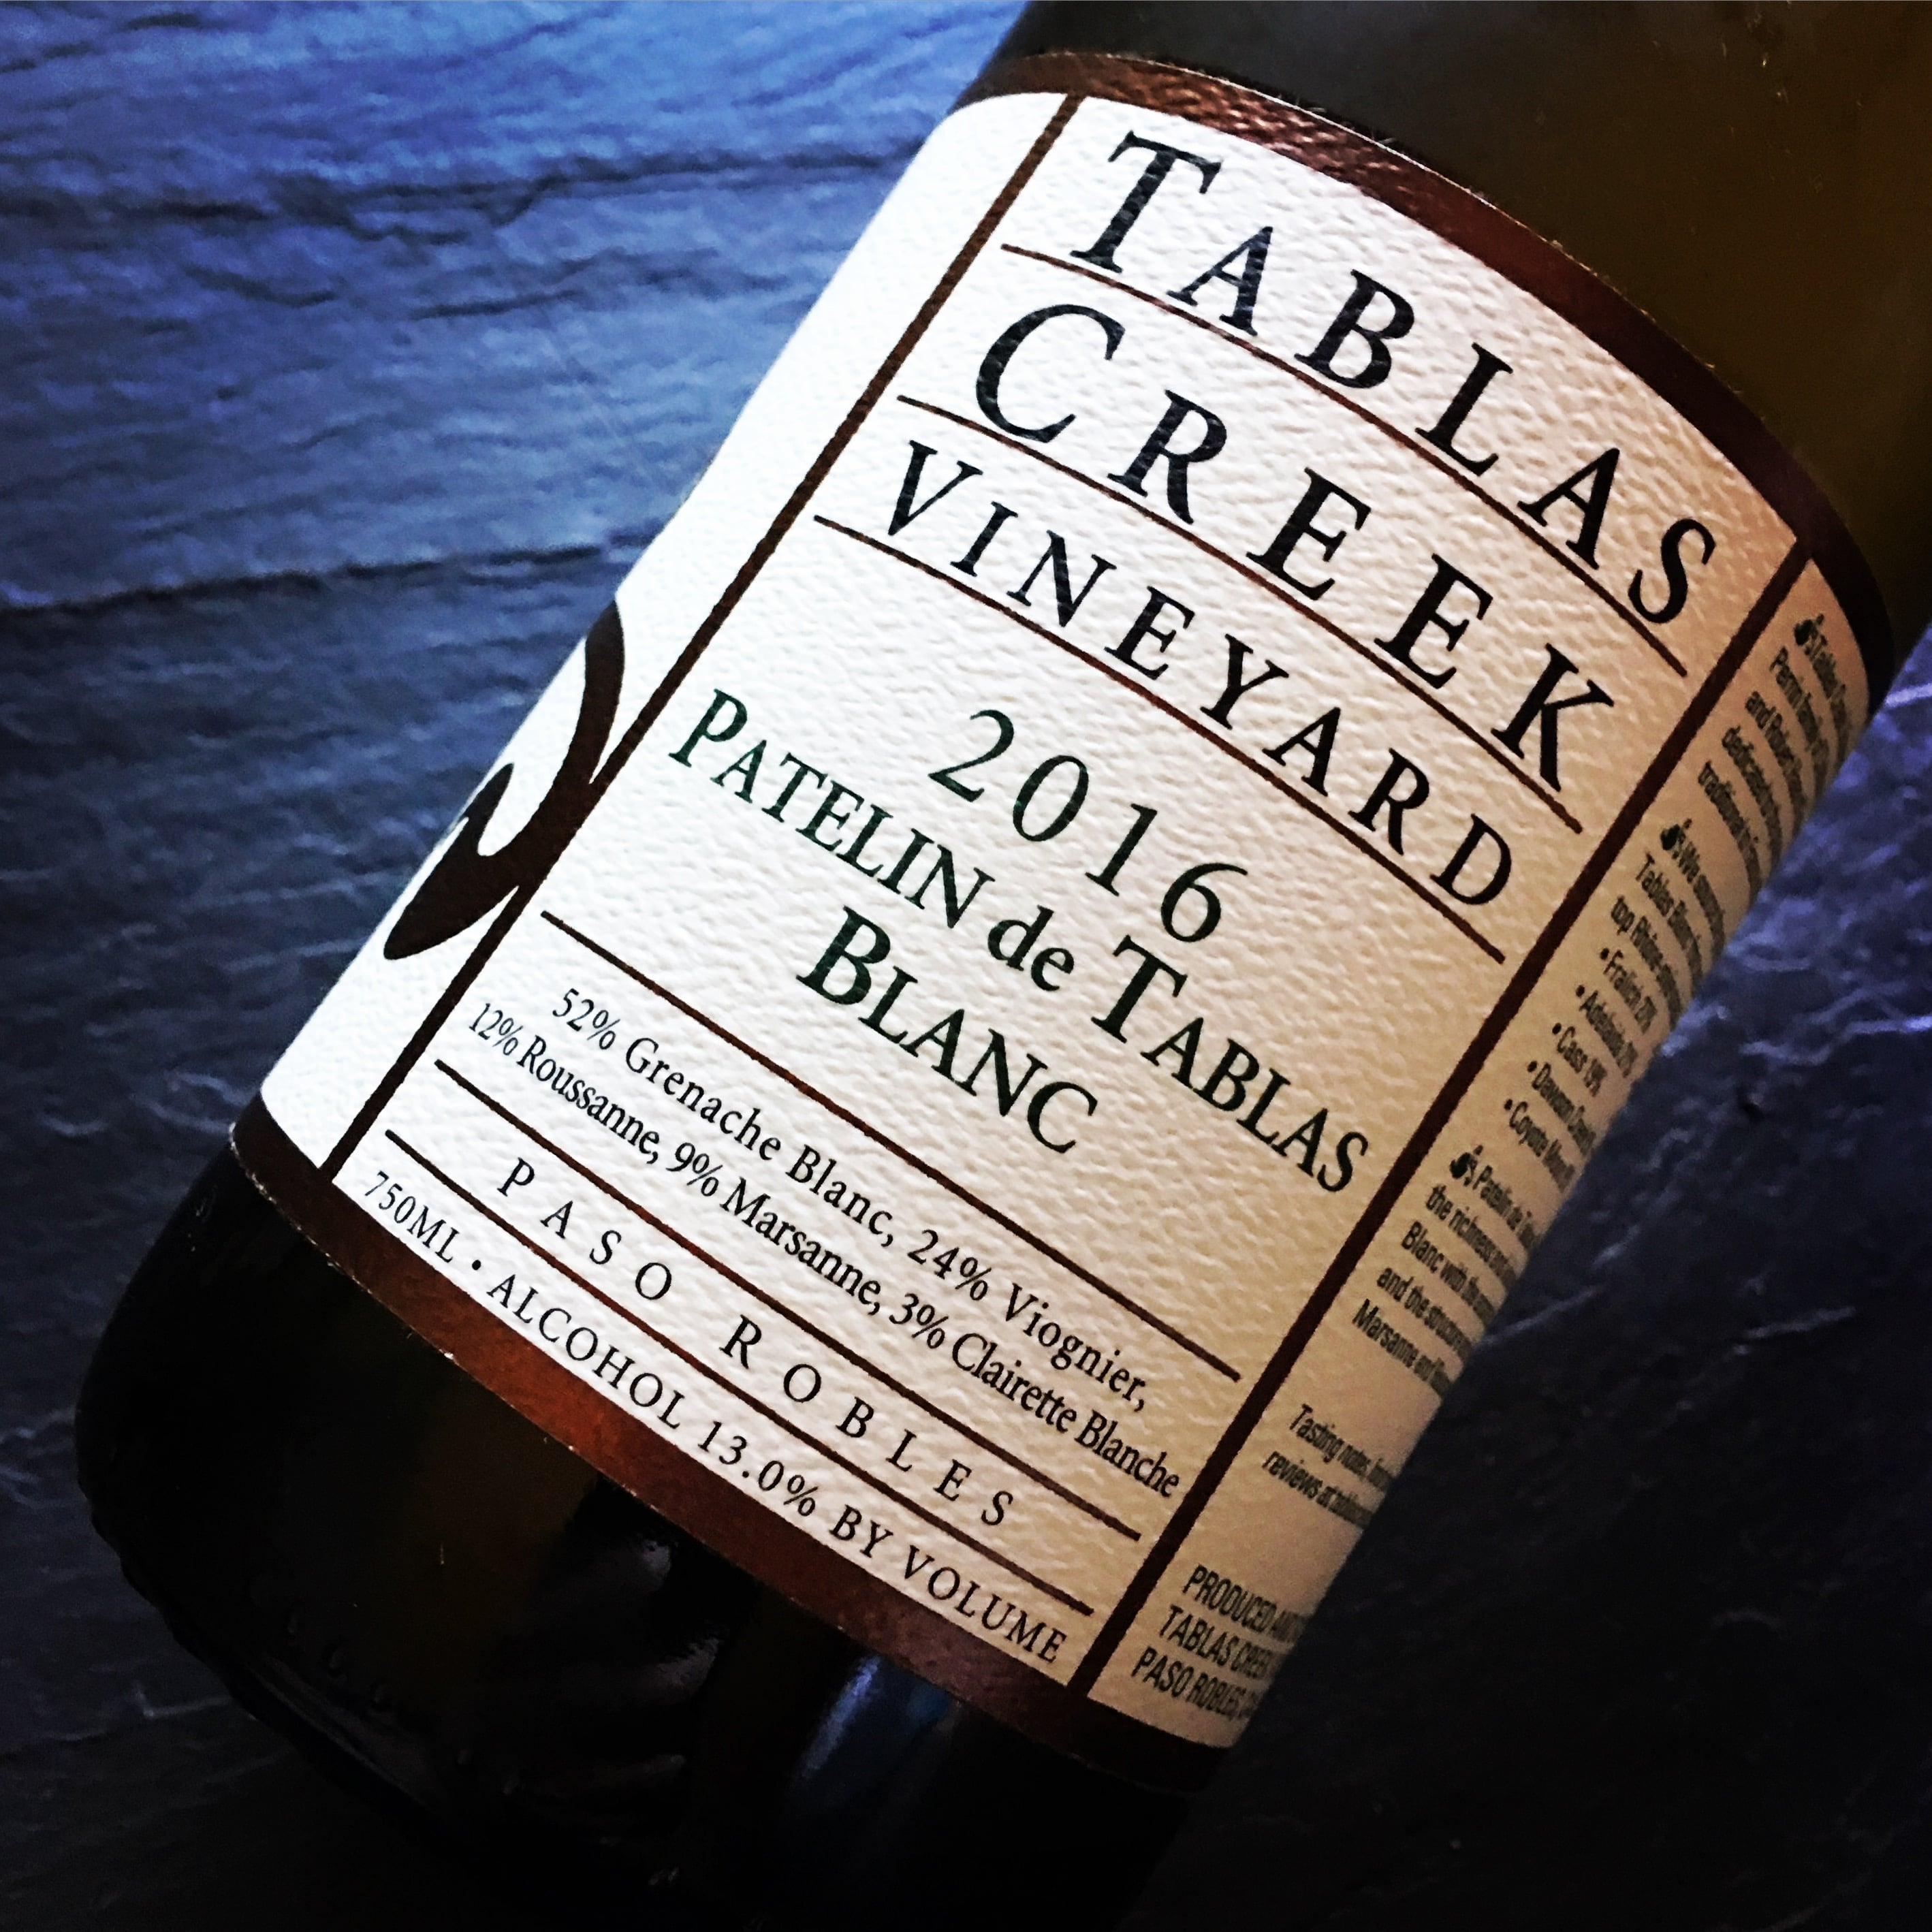 Tablas Creek Vineyard Patelin de Tablas Blanc 2016